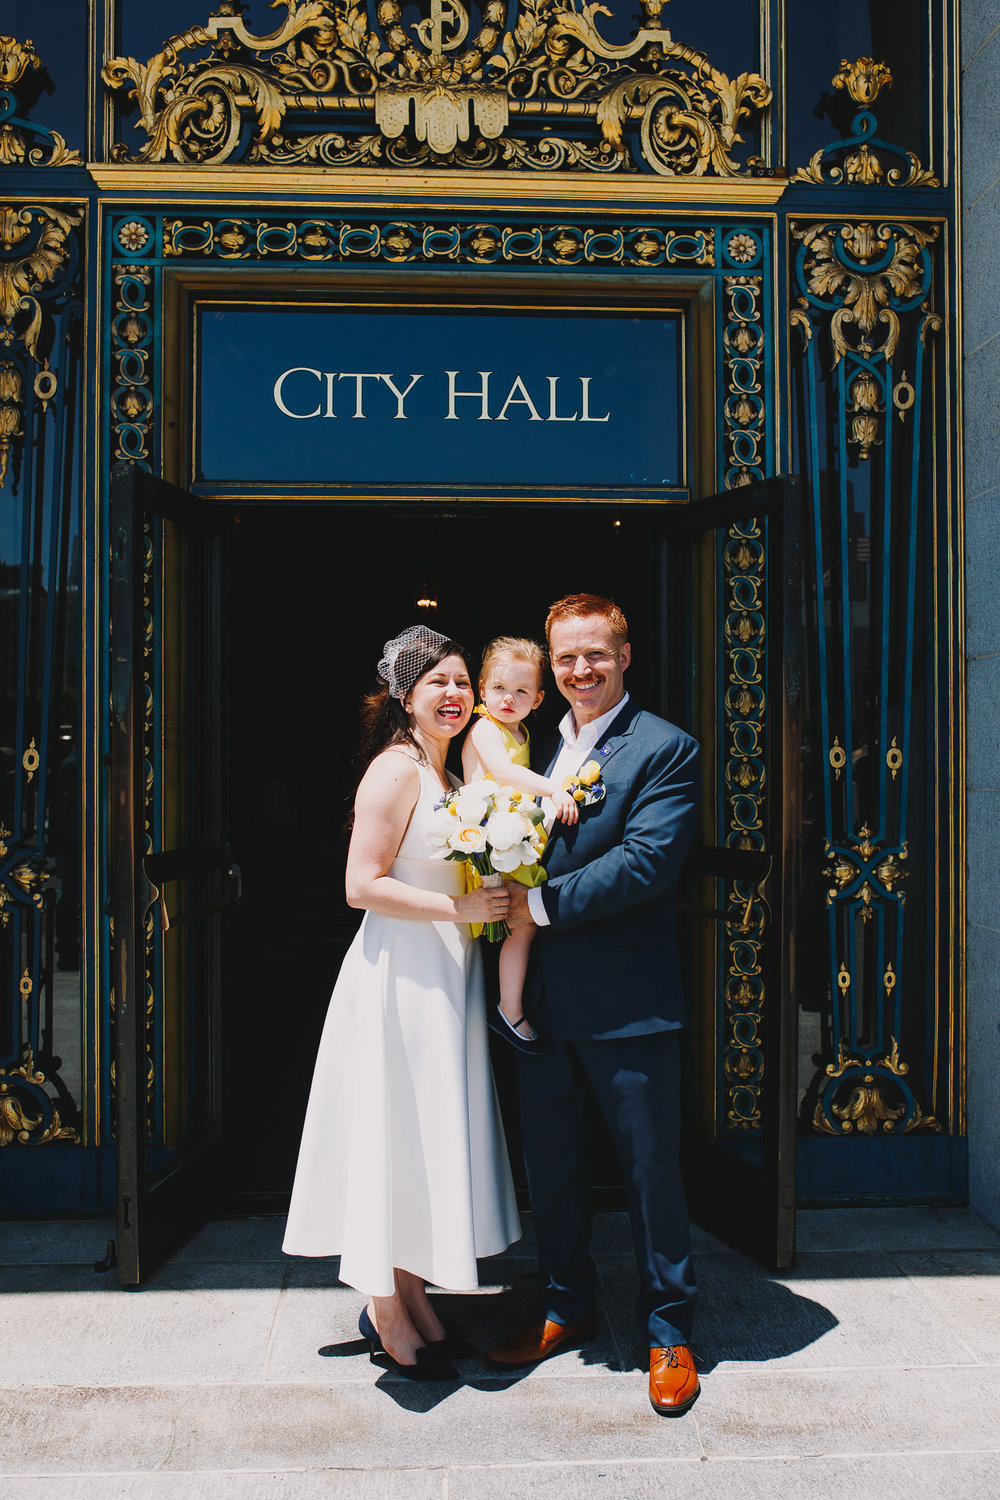 Archer Inspired Photography SF City Hall Elopement Wedding Lifestyle Documentary Affordable Photographer-221.jpg